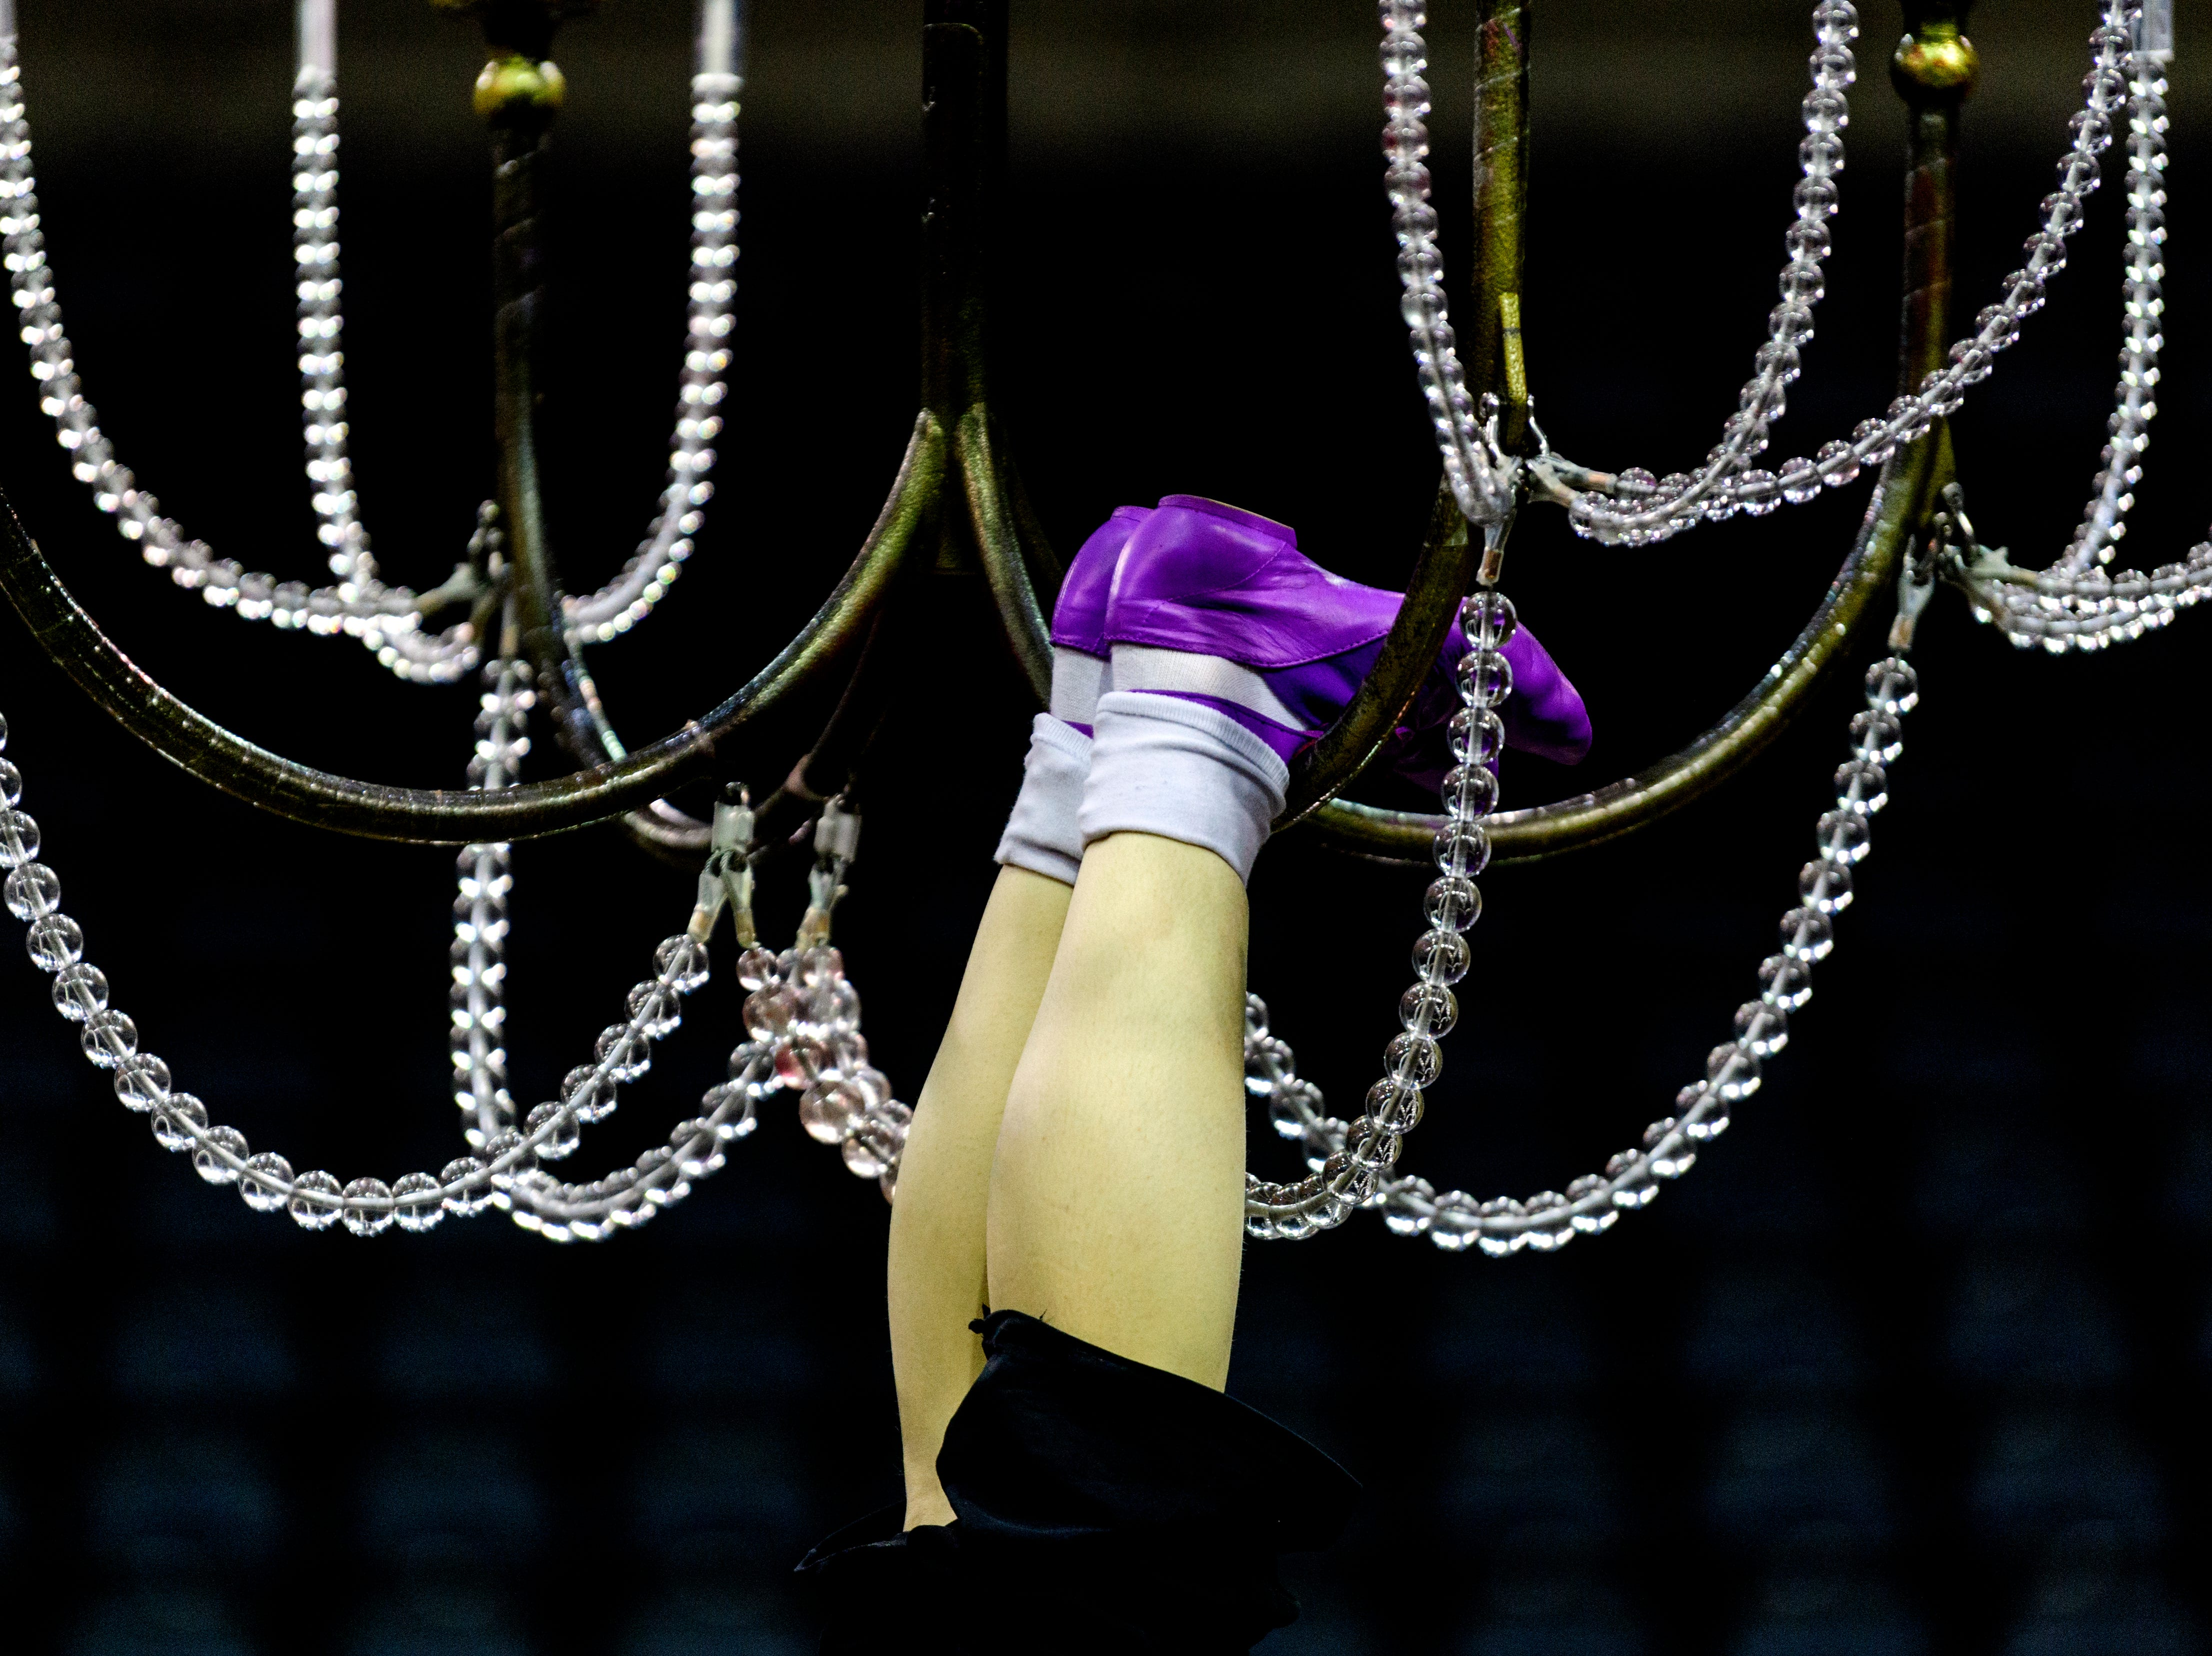 Aurélie Deroux-Dalphin hangs from a chandelier while rehearsing for the opening act of the Cirque du Soleil Coreto show at Ford Center in Evansville, Ind., Wednesday, Jan. 23, 2019.